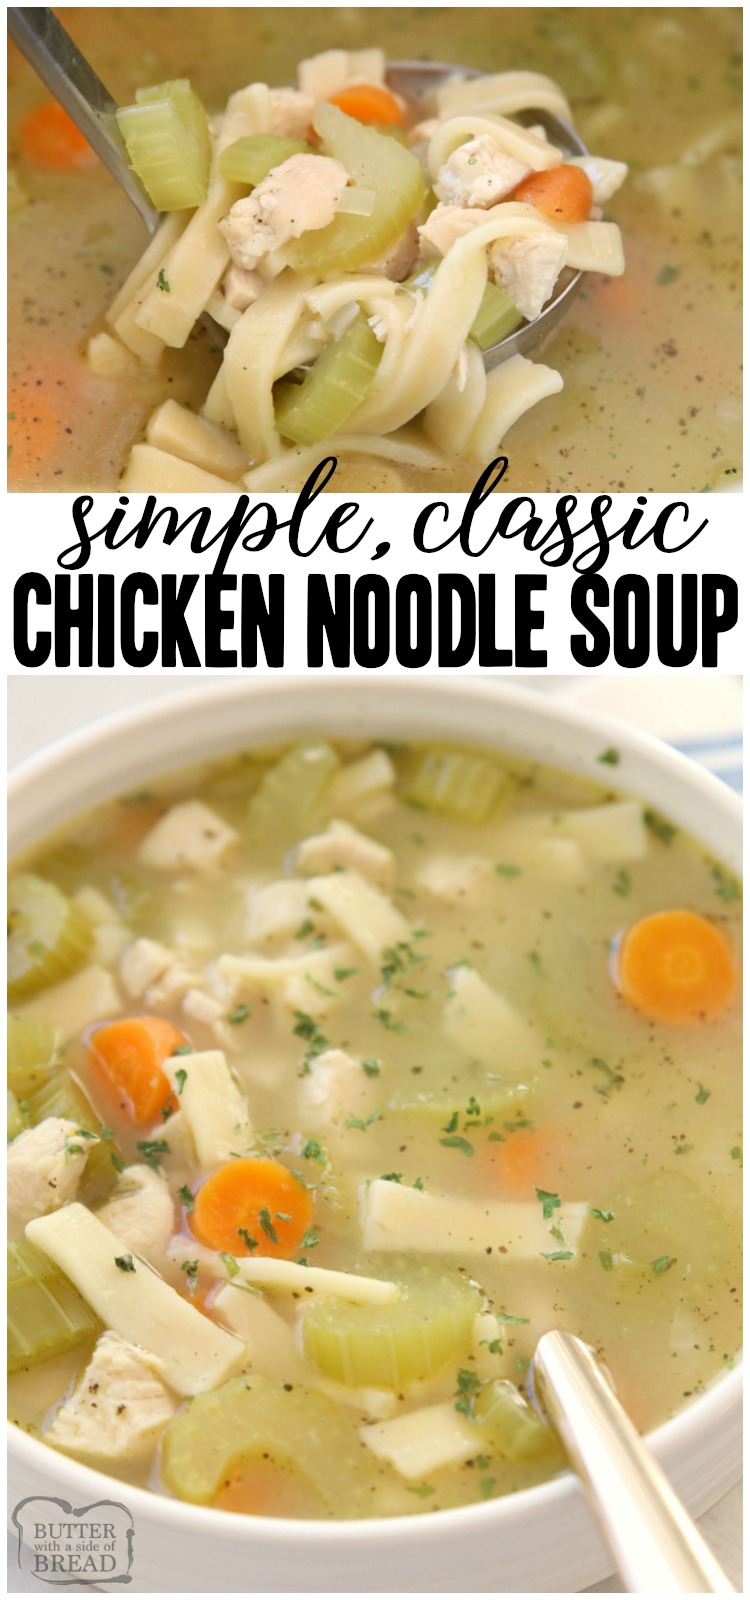 Classic Chicken Noodle Soup recipe made with tender chicken, carrots, celery, onion and a flavorful sage broth. Perfect comfort food recipe for cold days or when you're sick! #soup #chicken #chickennoodle #comfortfood #recipe #chickennoodlesoup #broth #recipe from BUTTER WITH A SIDE OF BREAD